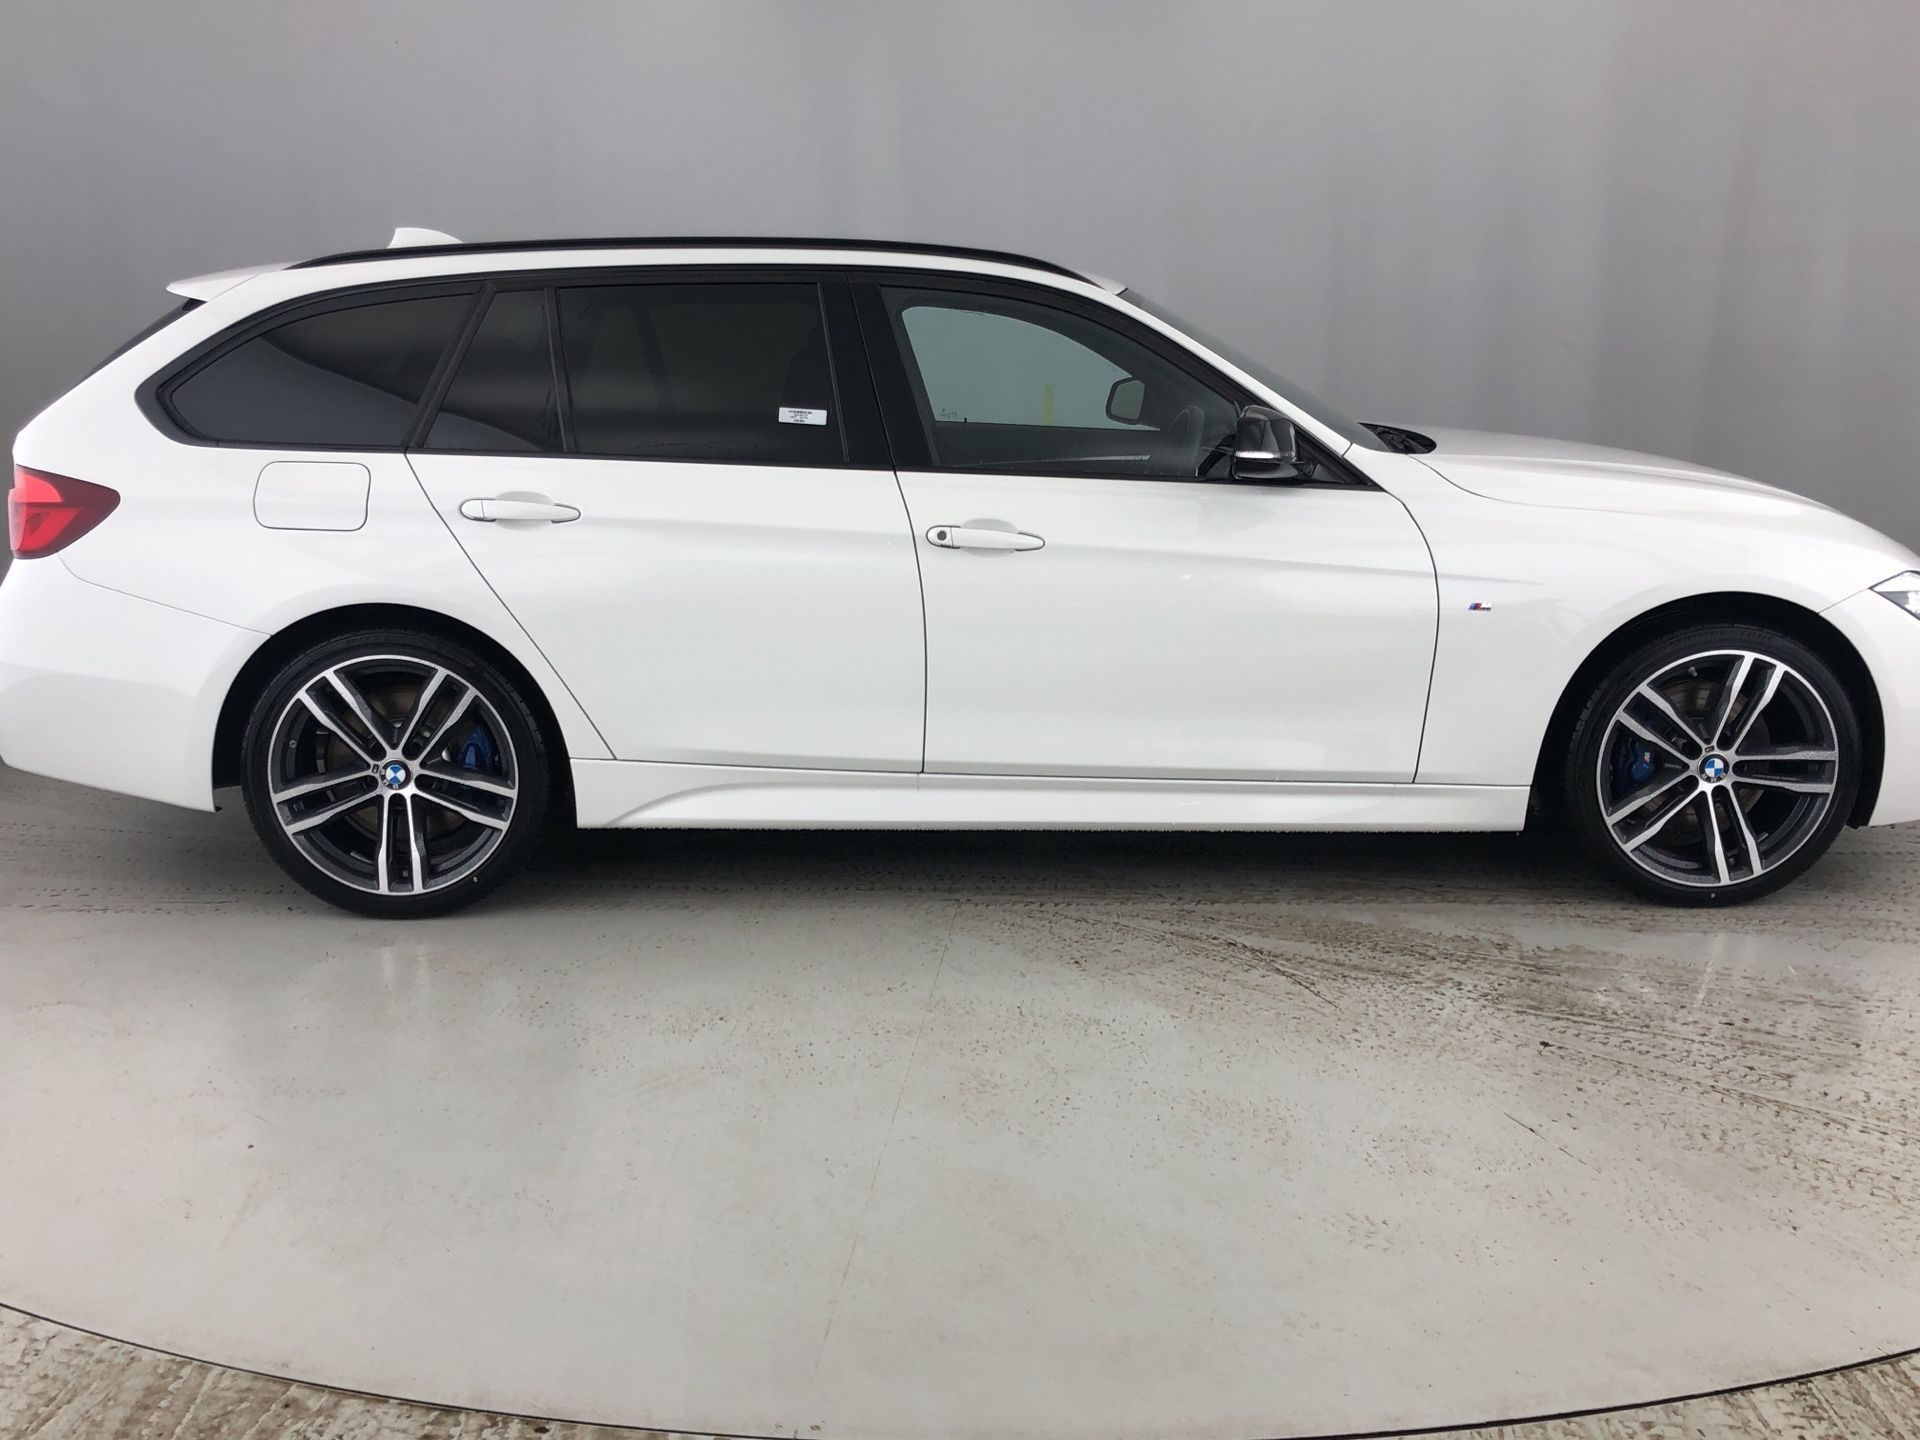 Image 3 - BMW 320d xDrive MSport ShadowEdition Touring (YA68MZT)